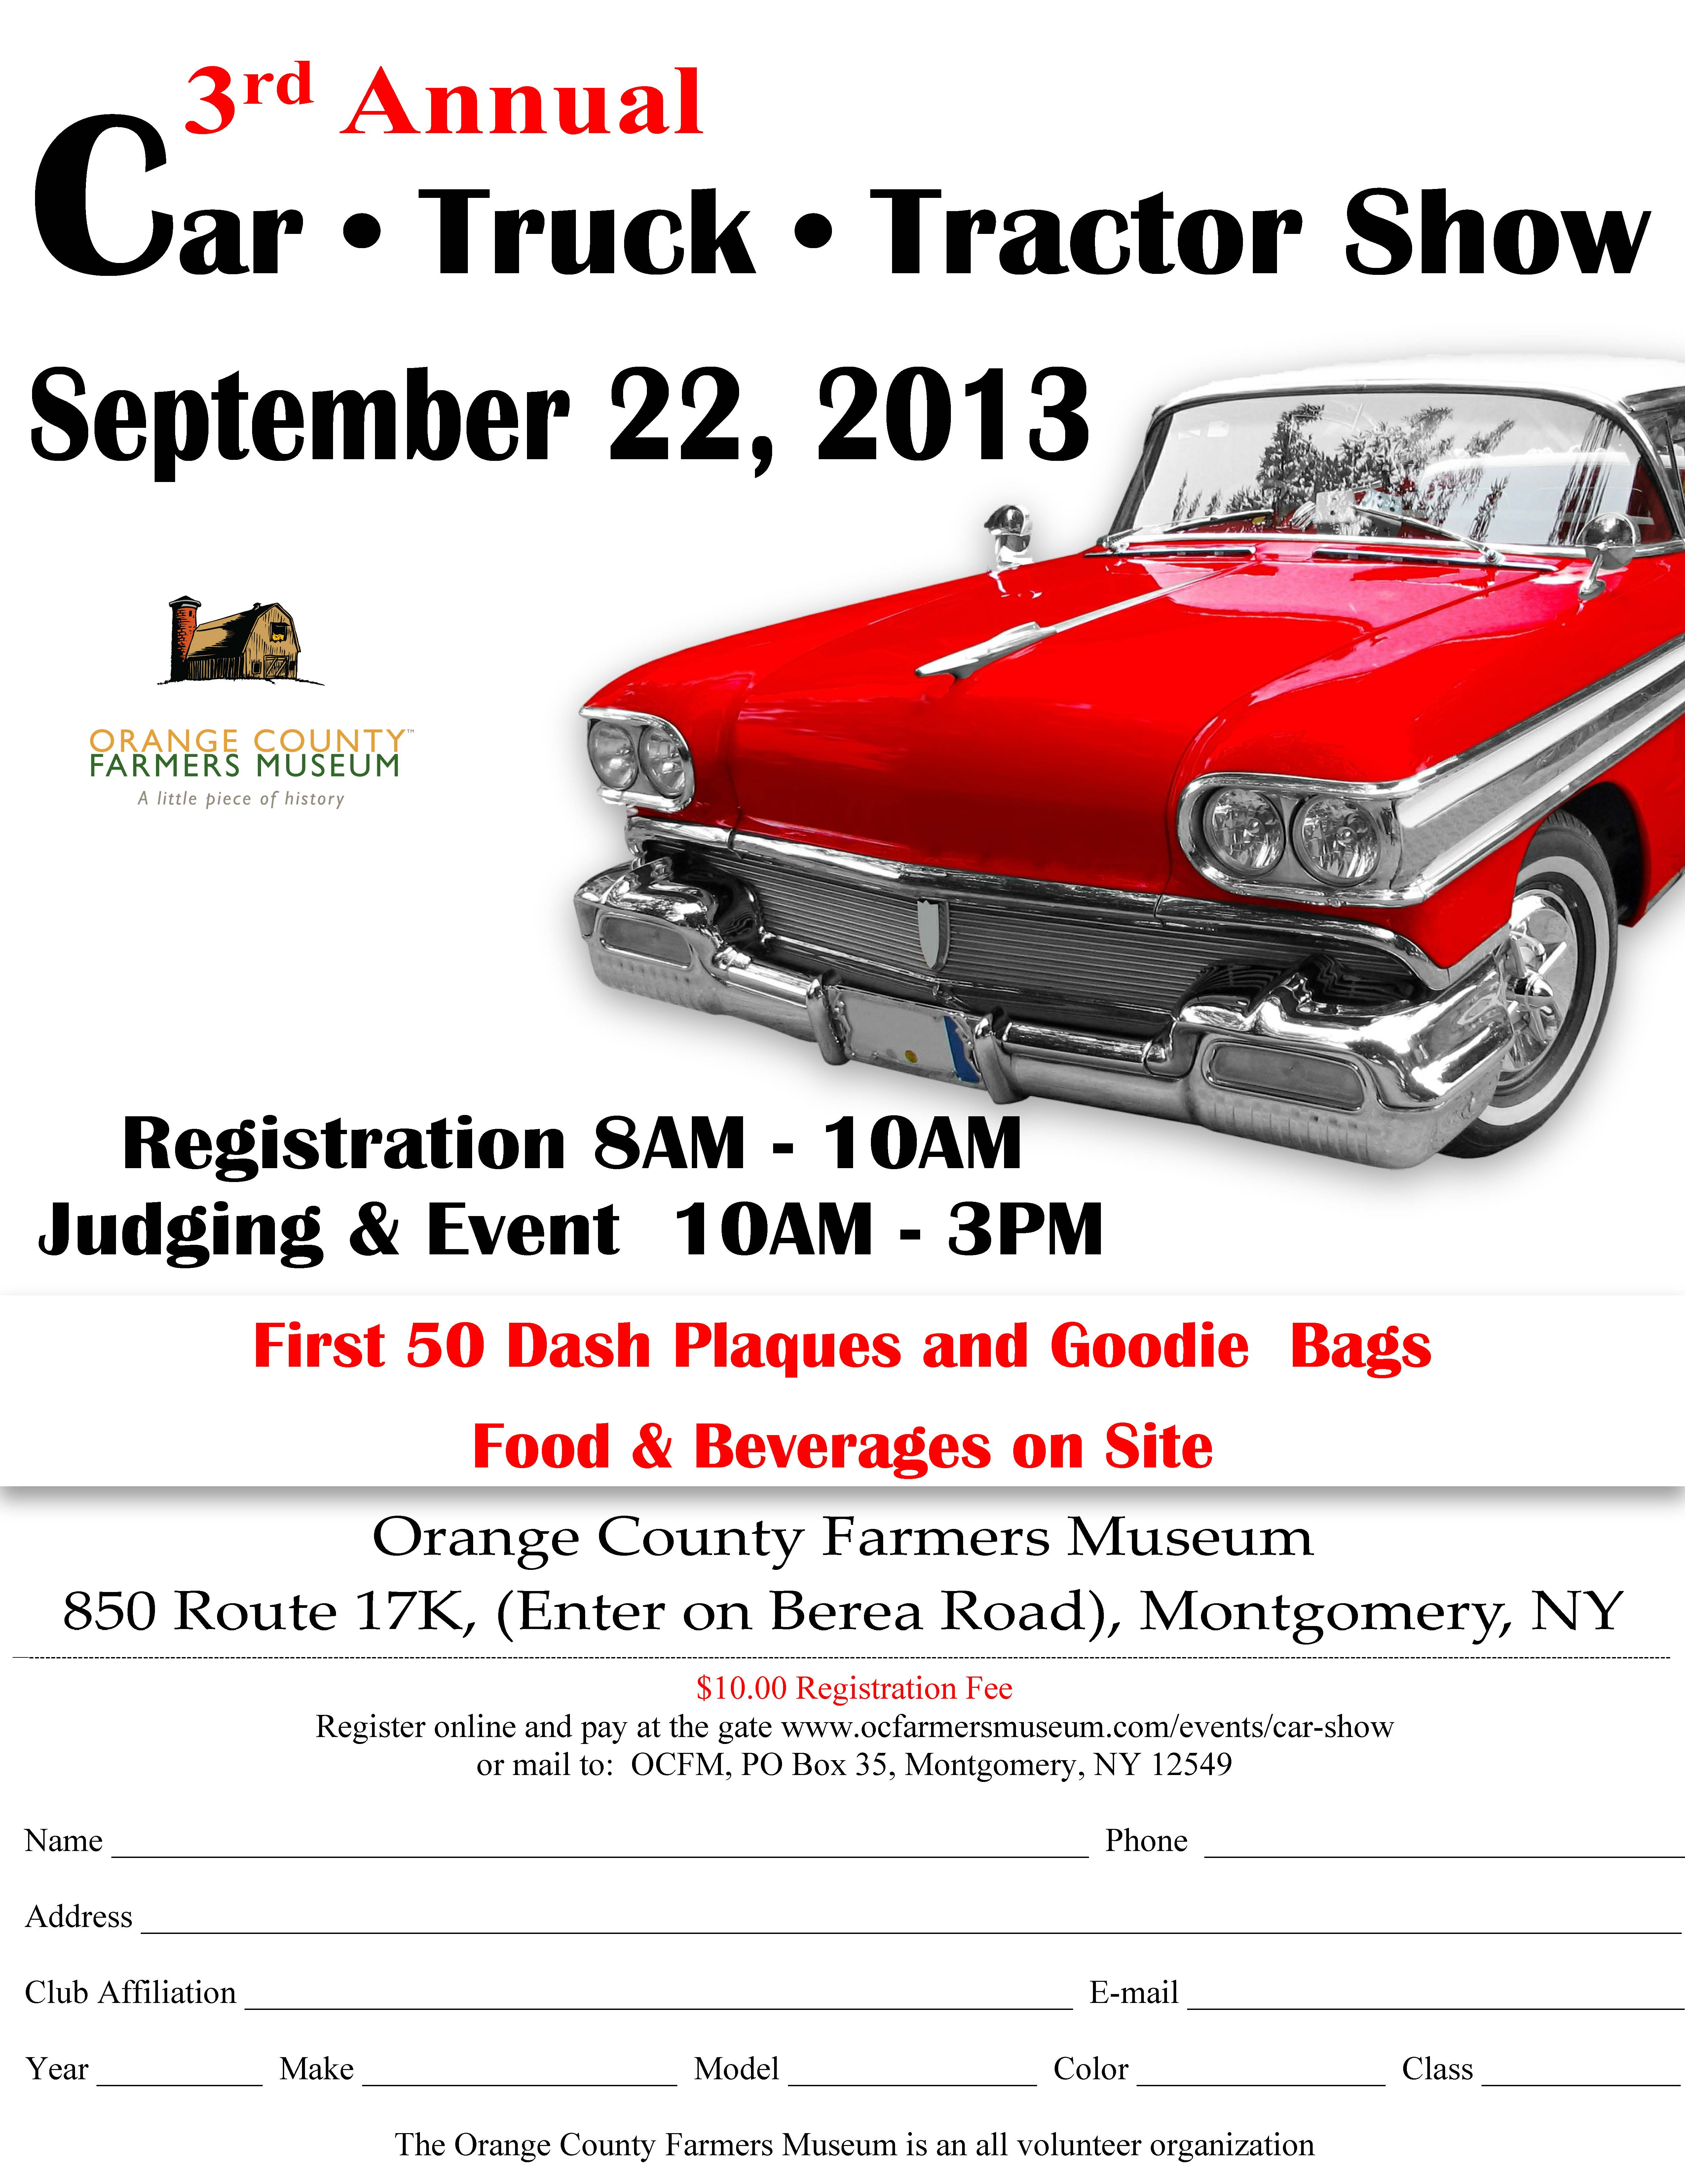 Car Show Flyer Orange County Farmers Museum